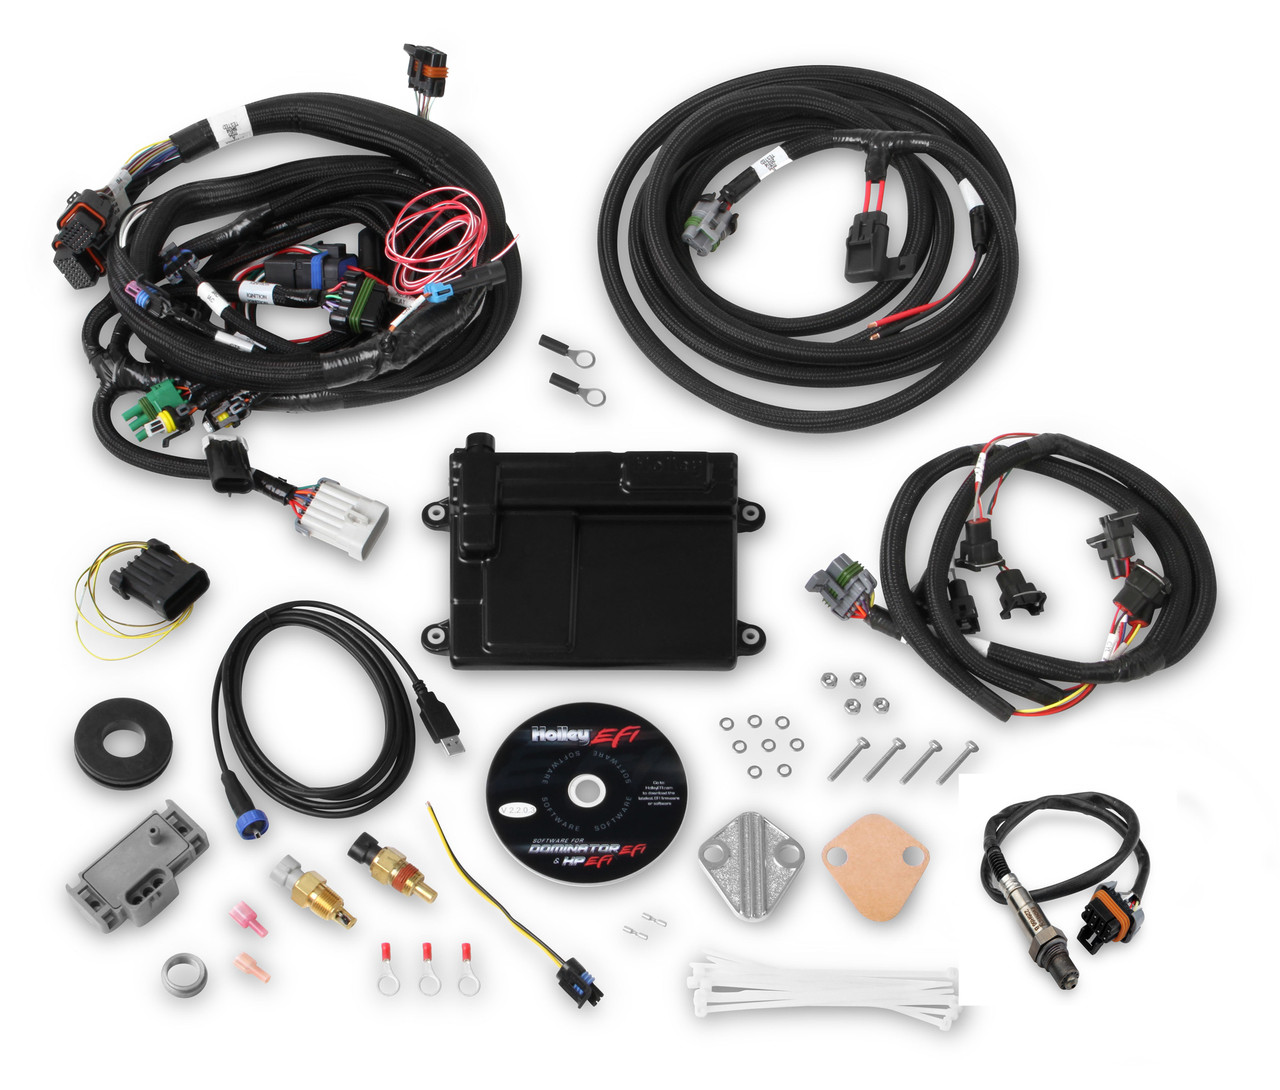 holley hp efi engine management kit. fits 86-93 302/351w - anderson ford  motorsport  anderson ford motorsport